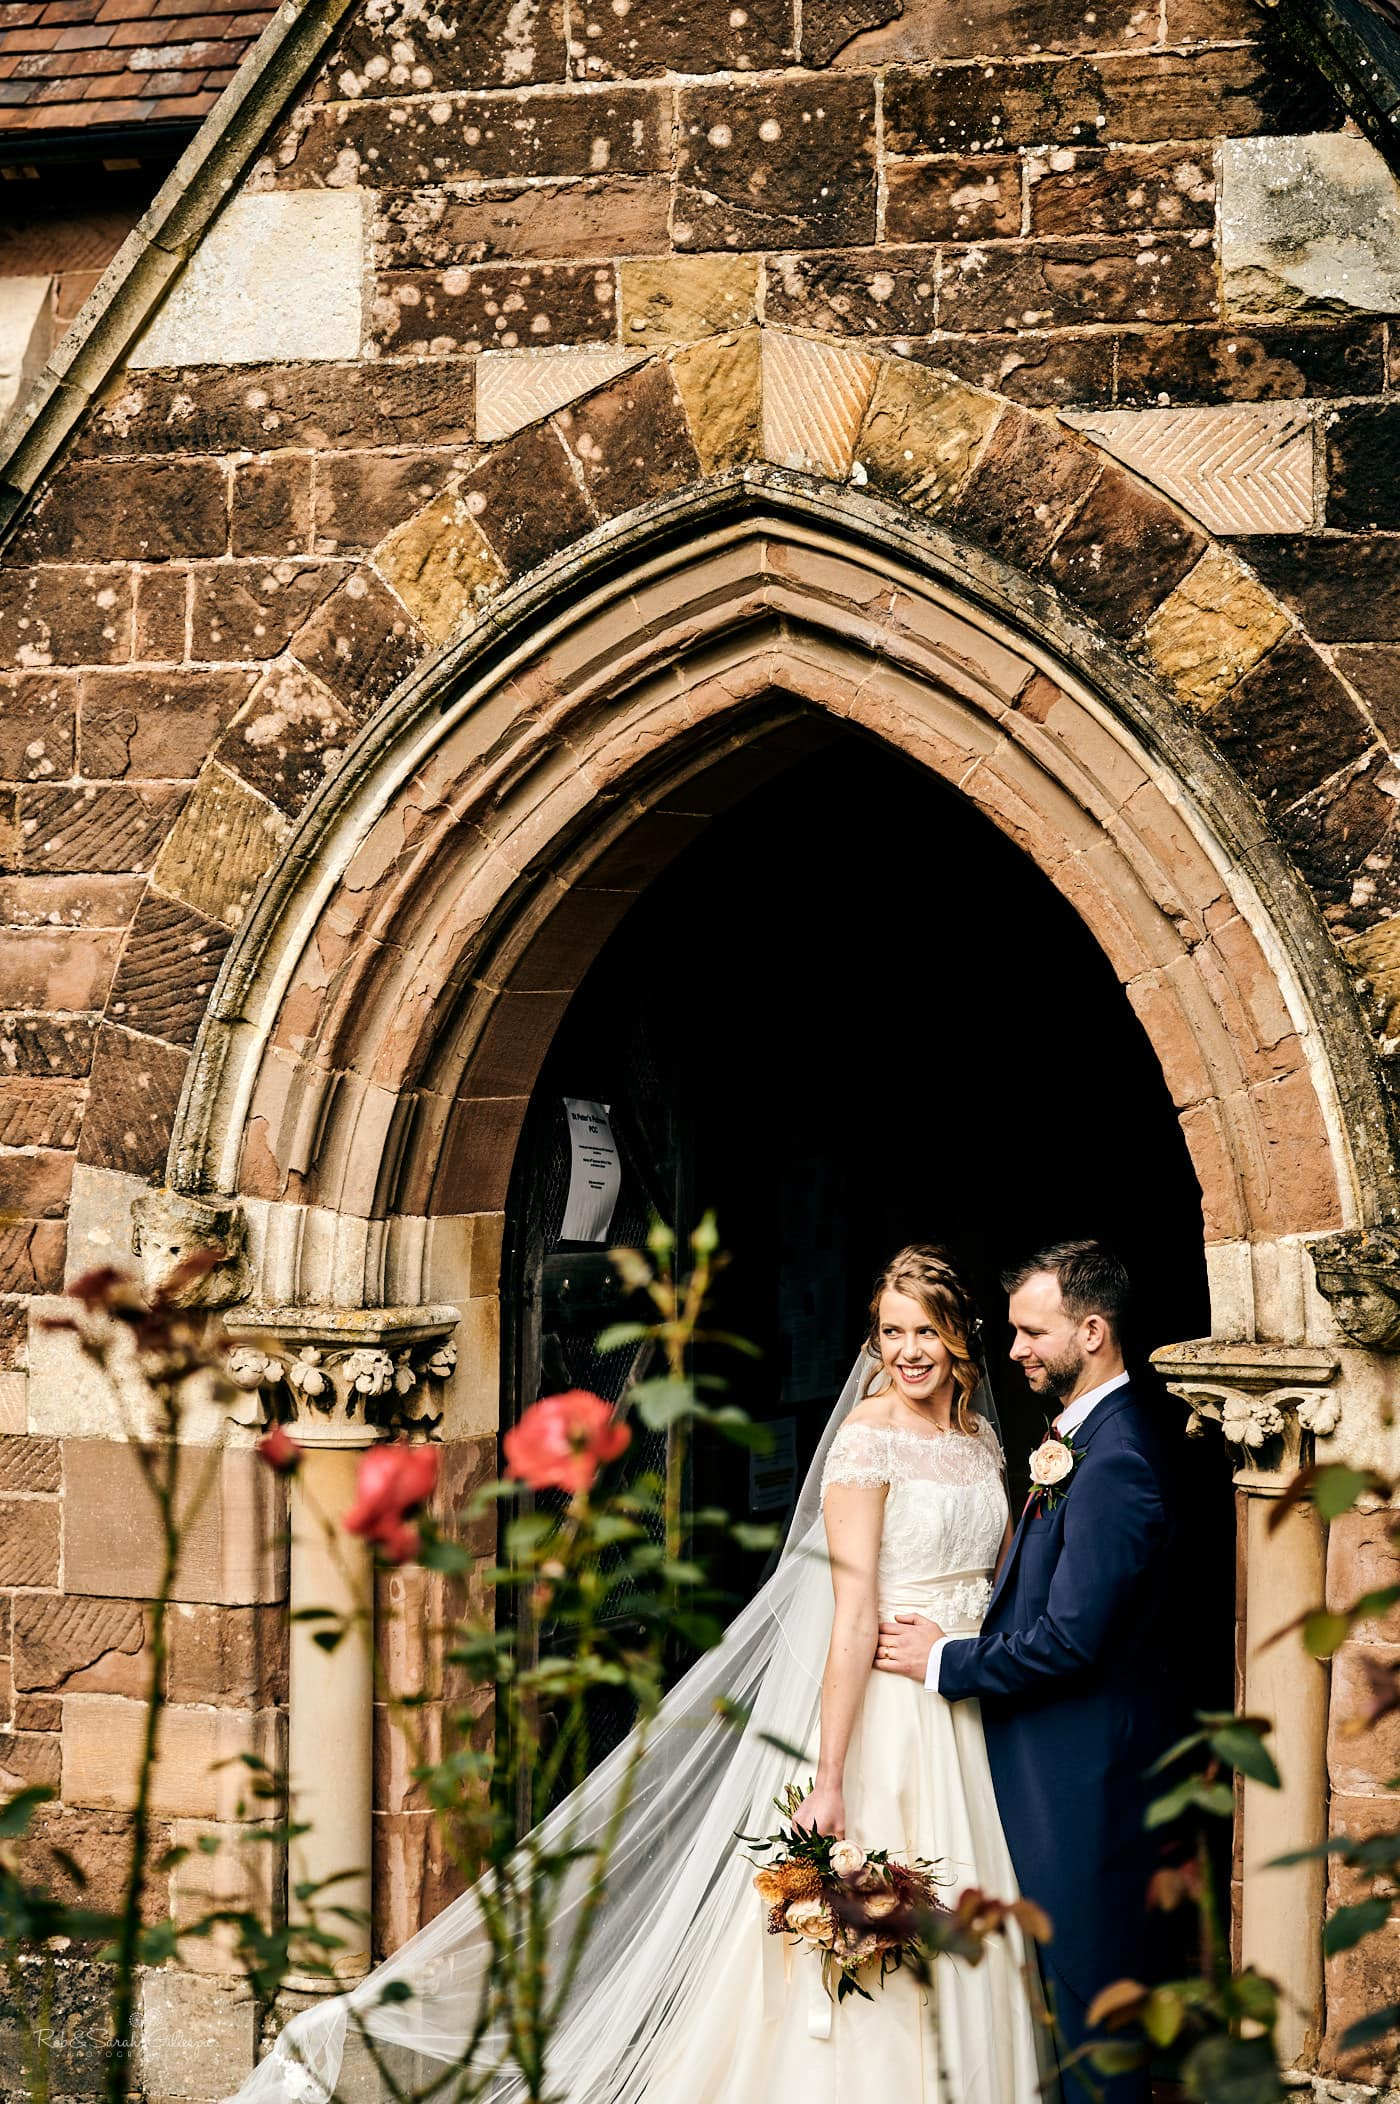 Bride and groom in archway at St Peter's church Pedmore